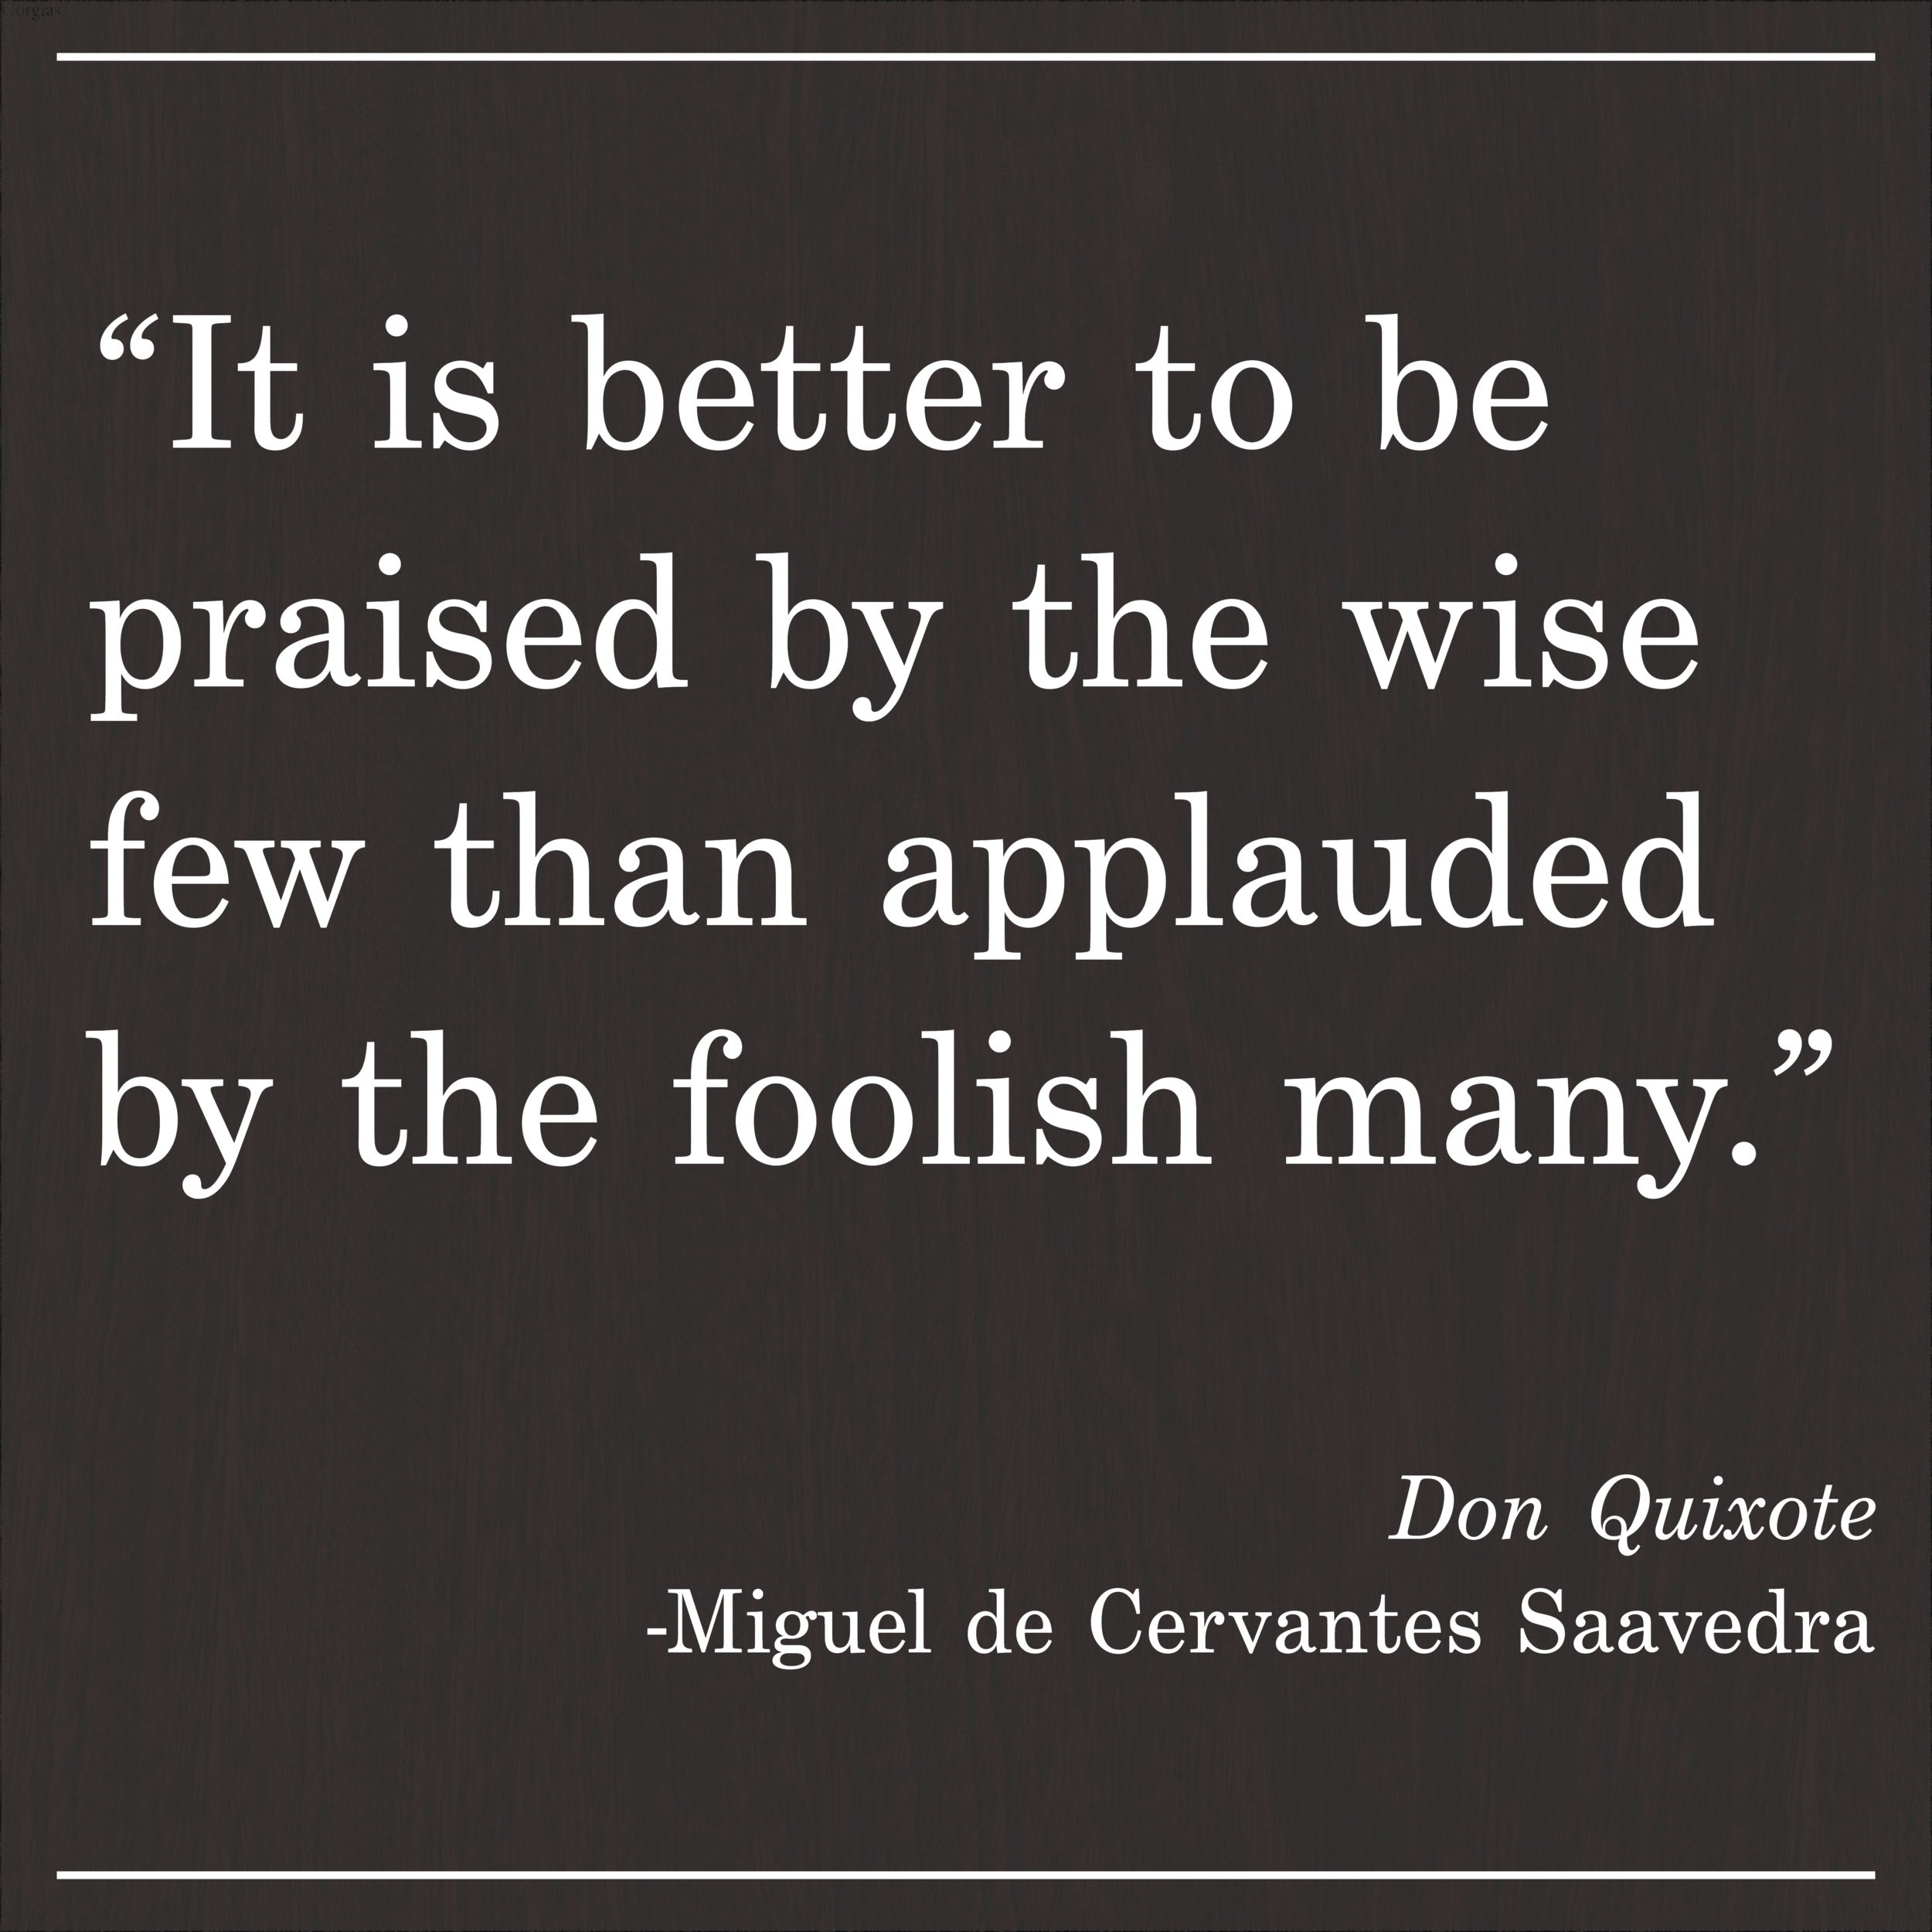 Daily Quote Don Quixote Miguel de Cervantes Saavedra